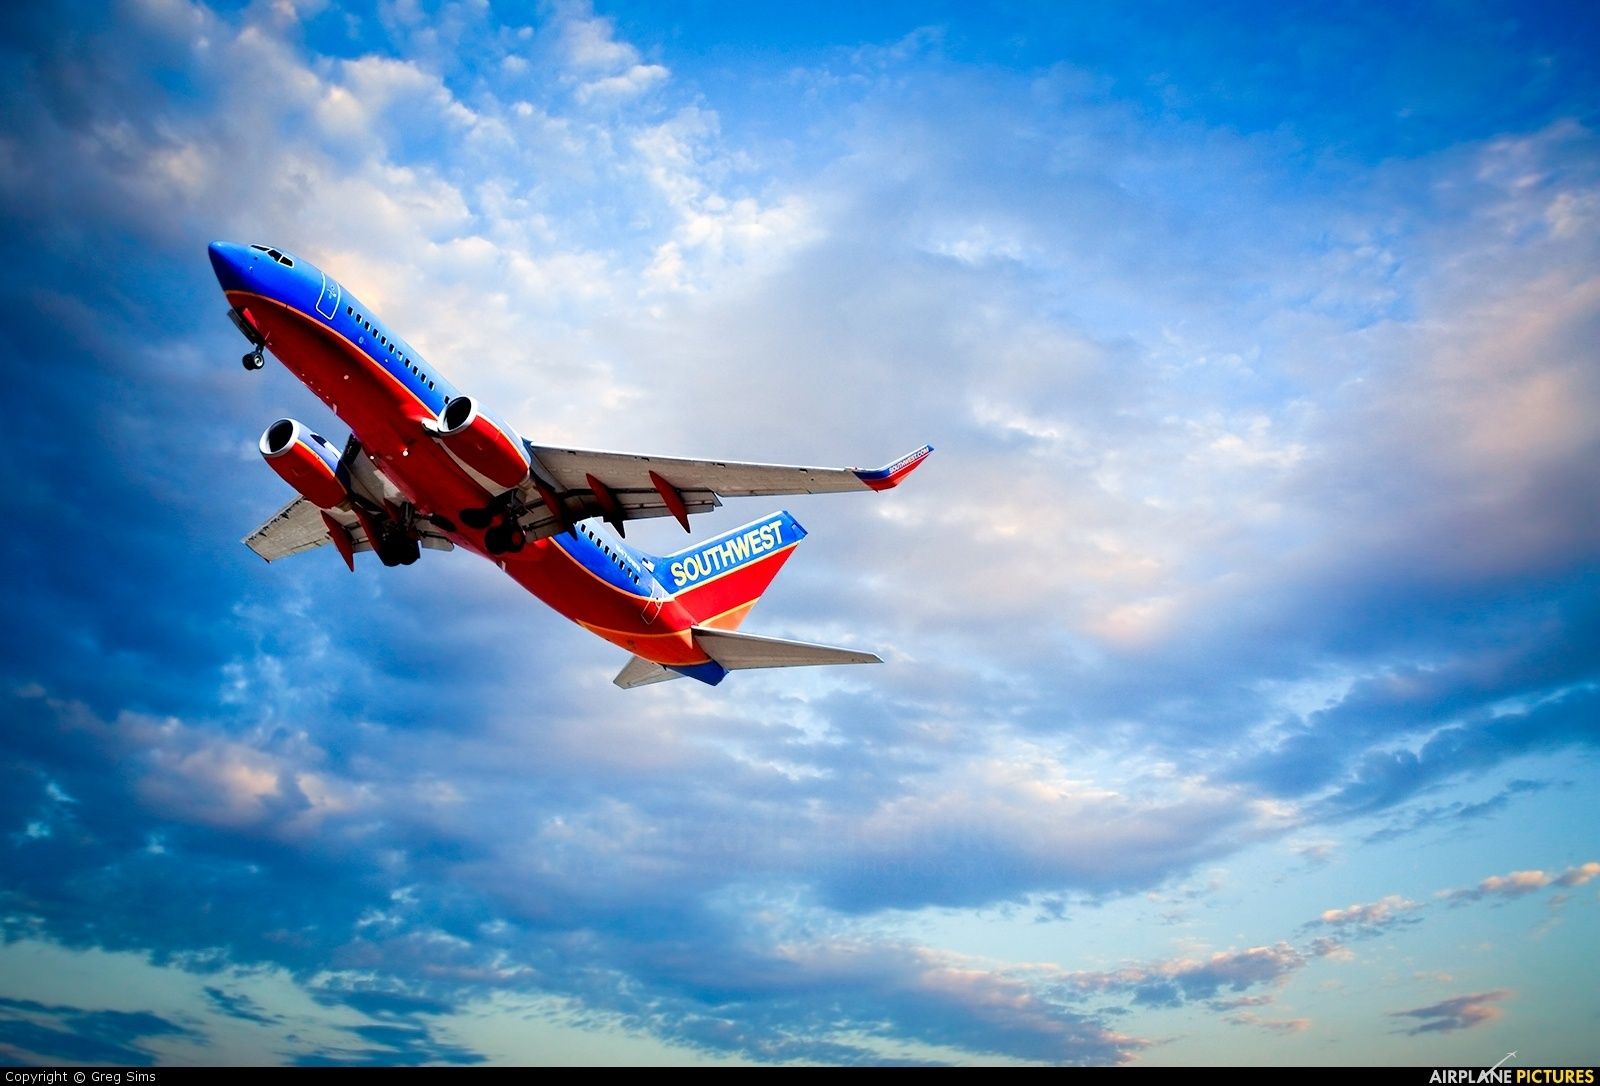 Southwest-cmo-marketing-customer service skills-conversation management